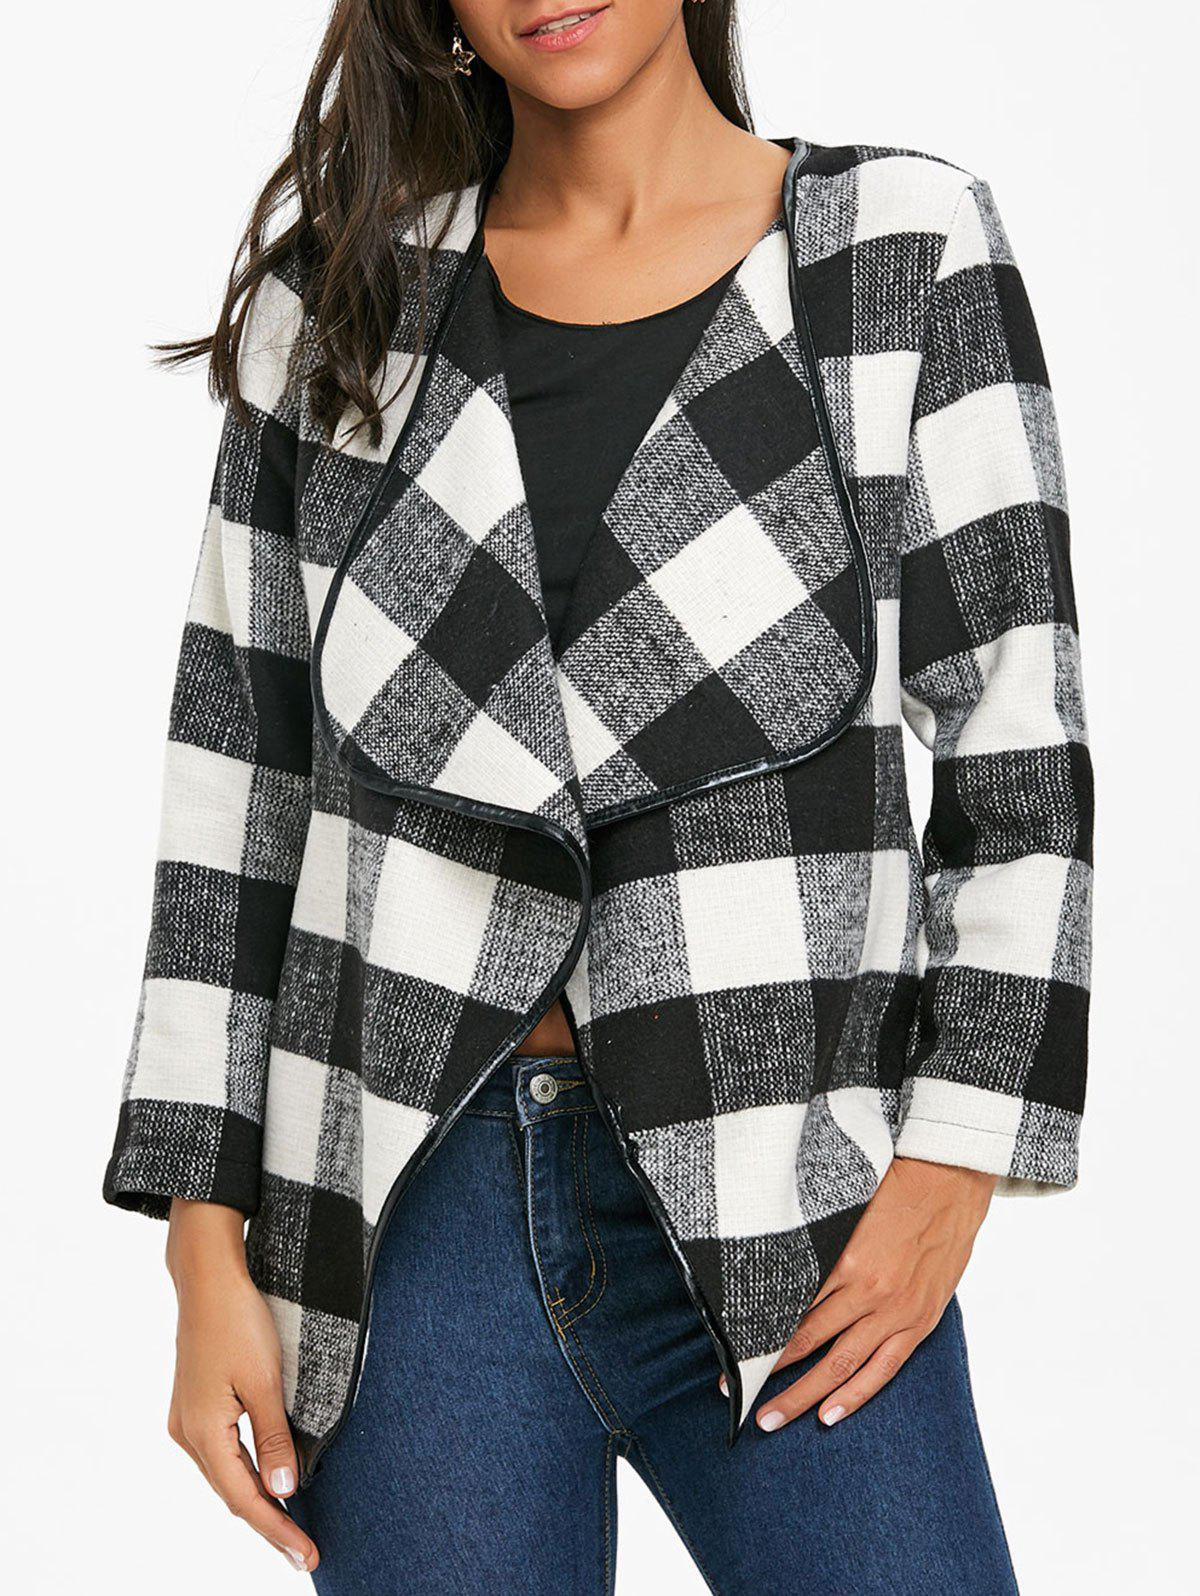 Asymmetrical Open Front Plaid Coat - WHITE/BLACK L